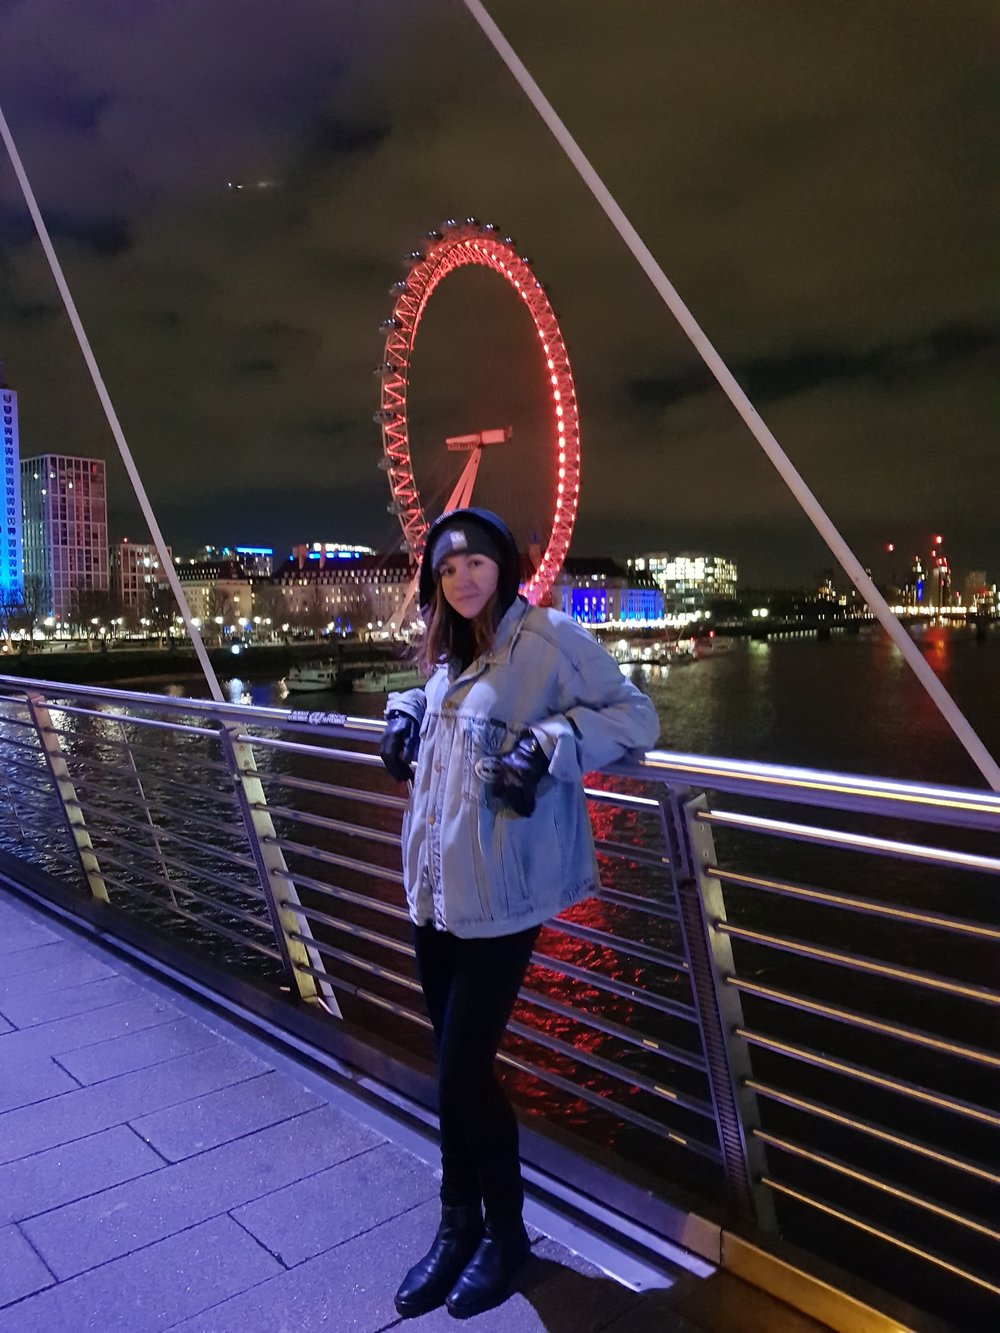 What I'll cover in this article: - 1) Piccadilly Circus2) Leicester Square3) Covent Garden4) Trafalgar Square5)Winter Wonderland6)Southbank Centre Market & Stroll7) Christmas at KEW Gardens